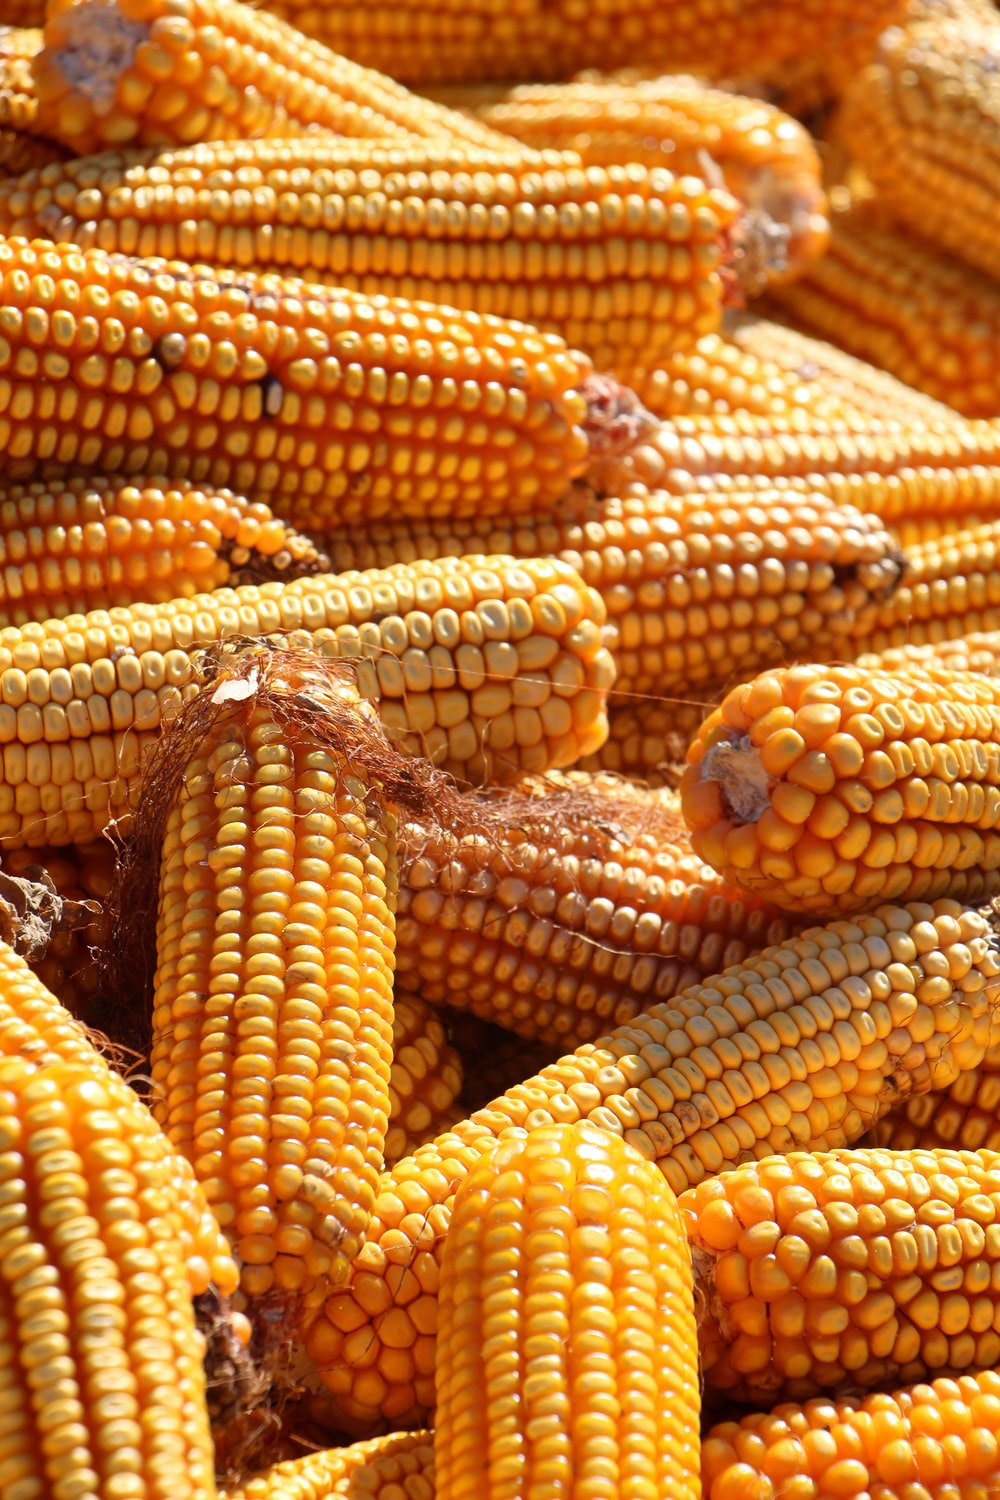 yellow corn in close up photography